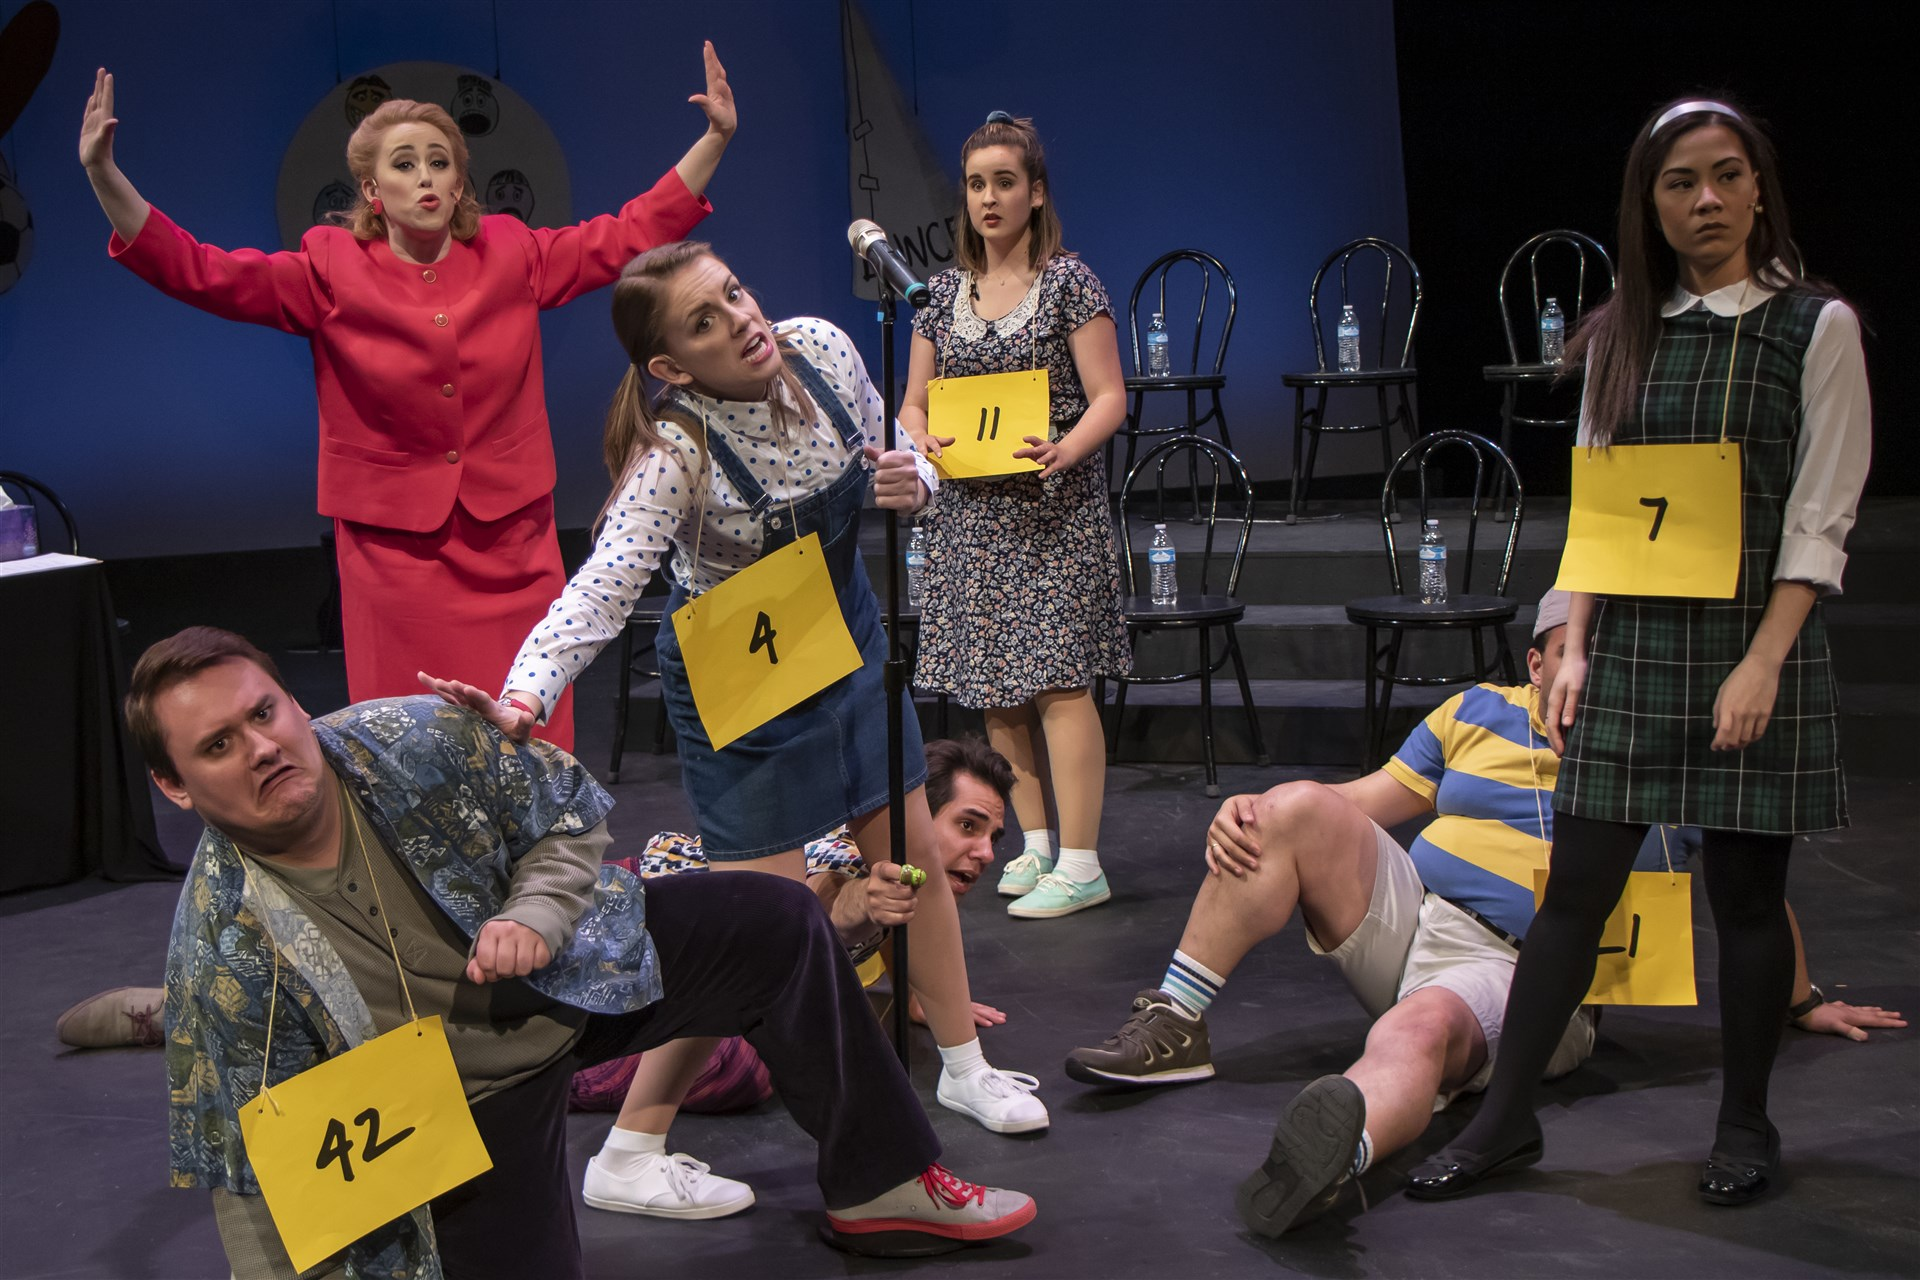 """Rona Lisa Perretti (Somantha Sostarich) tries to maintain order among the spellers at the spelling bee including, from left, William (Gage Patterson), Logainne (Sephanie Staszak), Leaf (Adam Qutaishat), Olive (Ava Bush), Chip (Romesh Alex Jaya and Marcy (Ashley Oviedo in a scene from All In Productions """"The 25th Annual Putnam County Spelling Bee."""""""